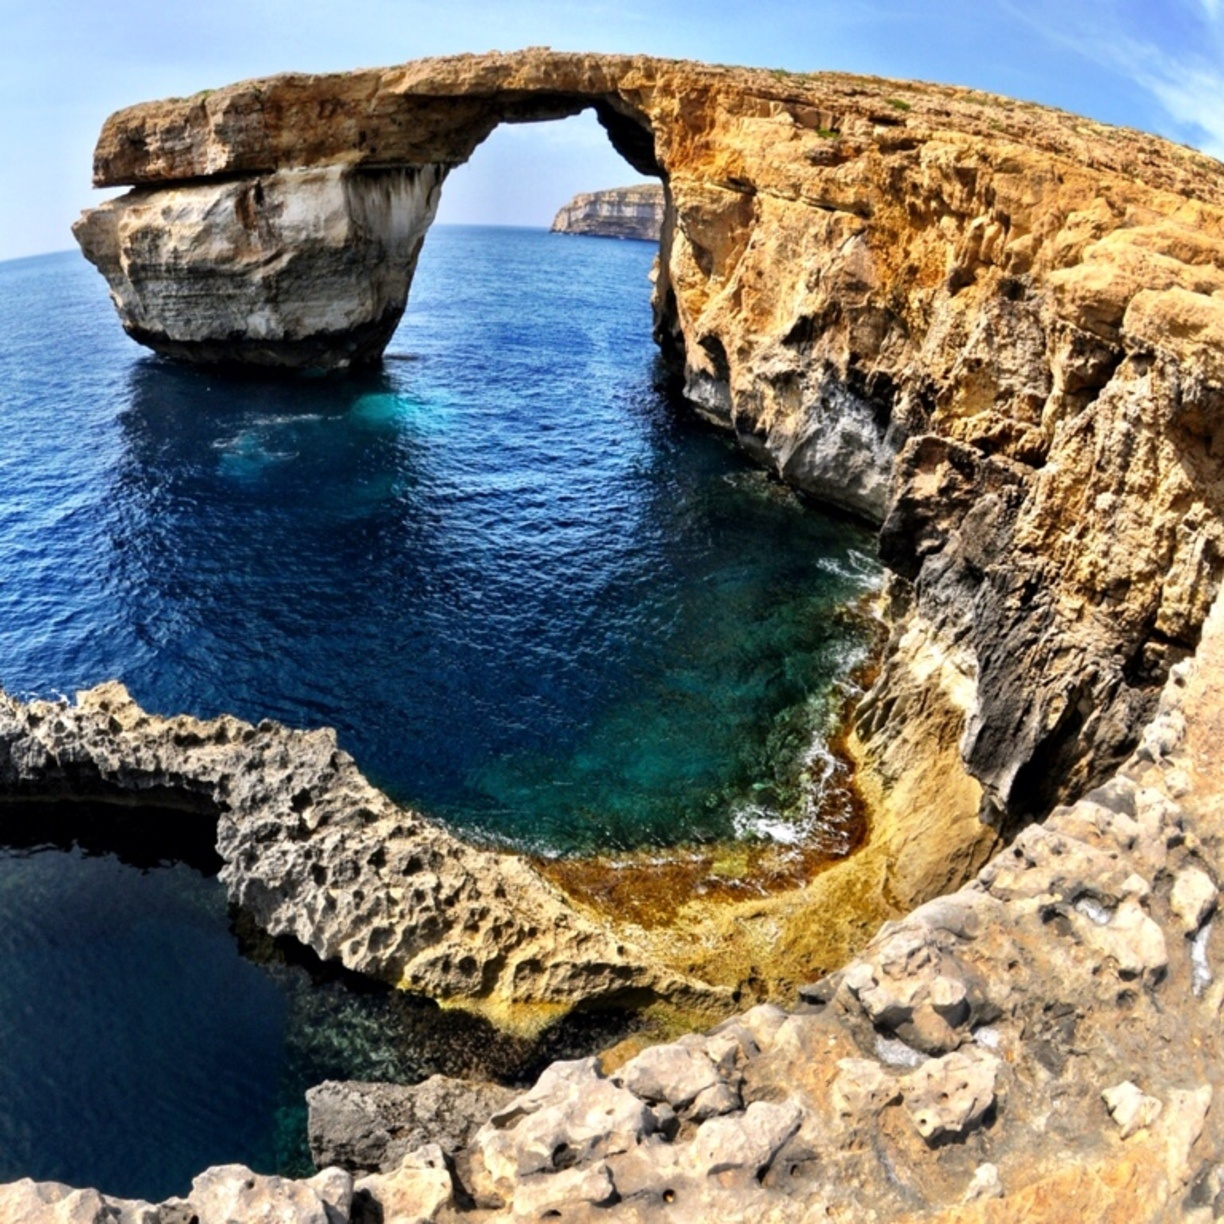 MalDia-02-27-01-21-The-Dwejra-Azure-Window-sadly-gone-forever